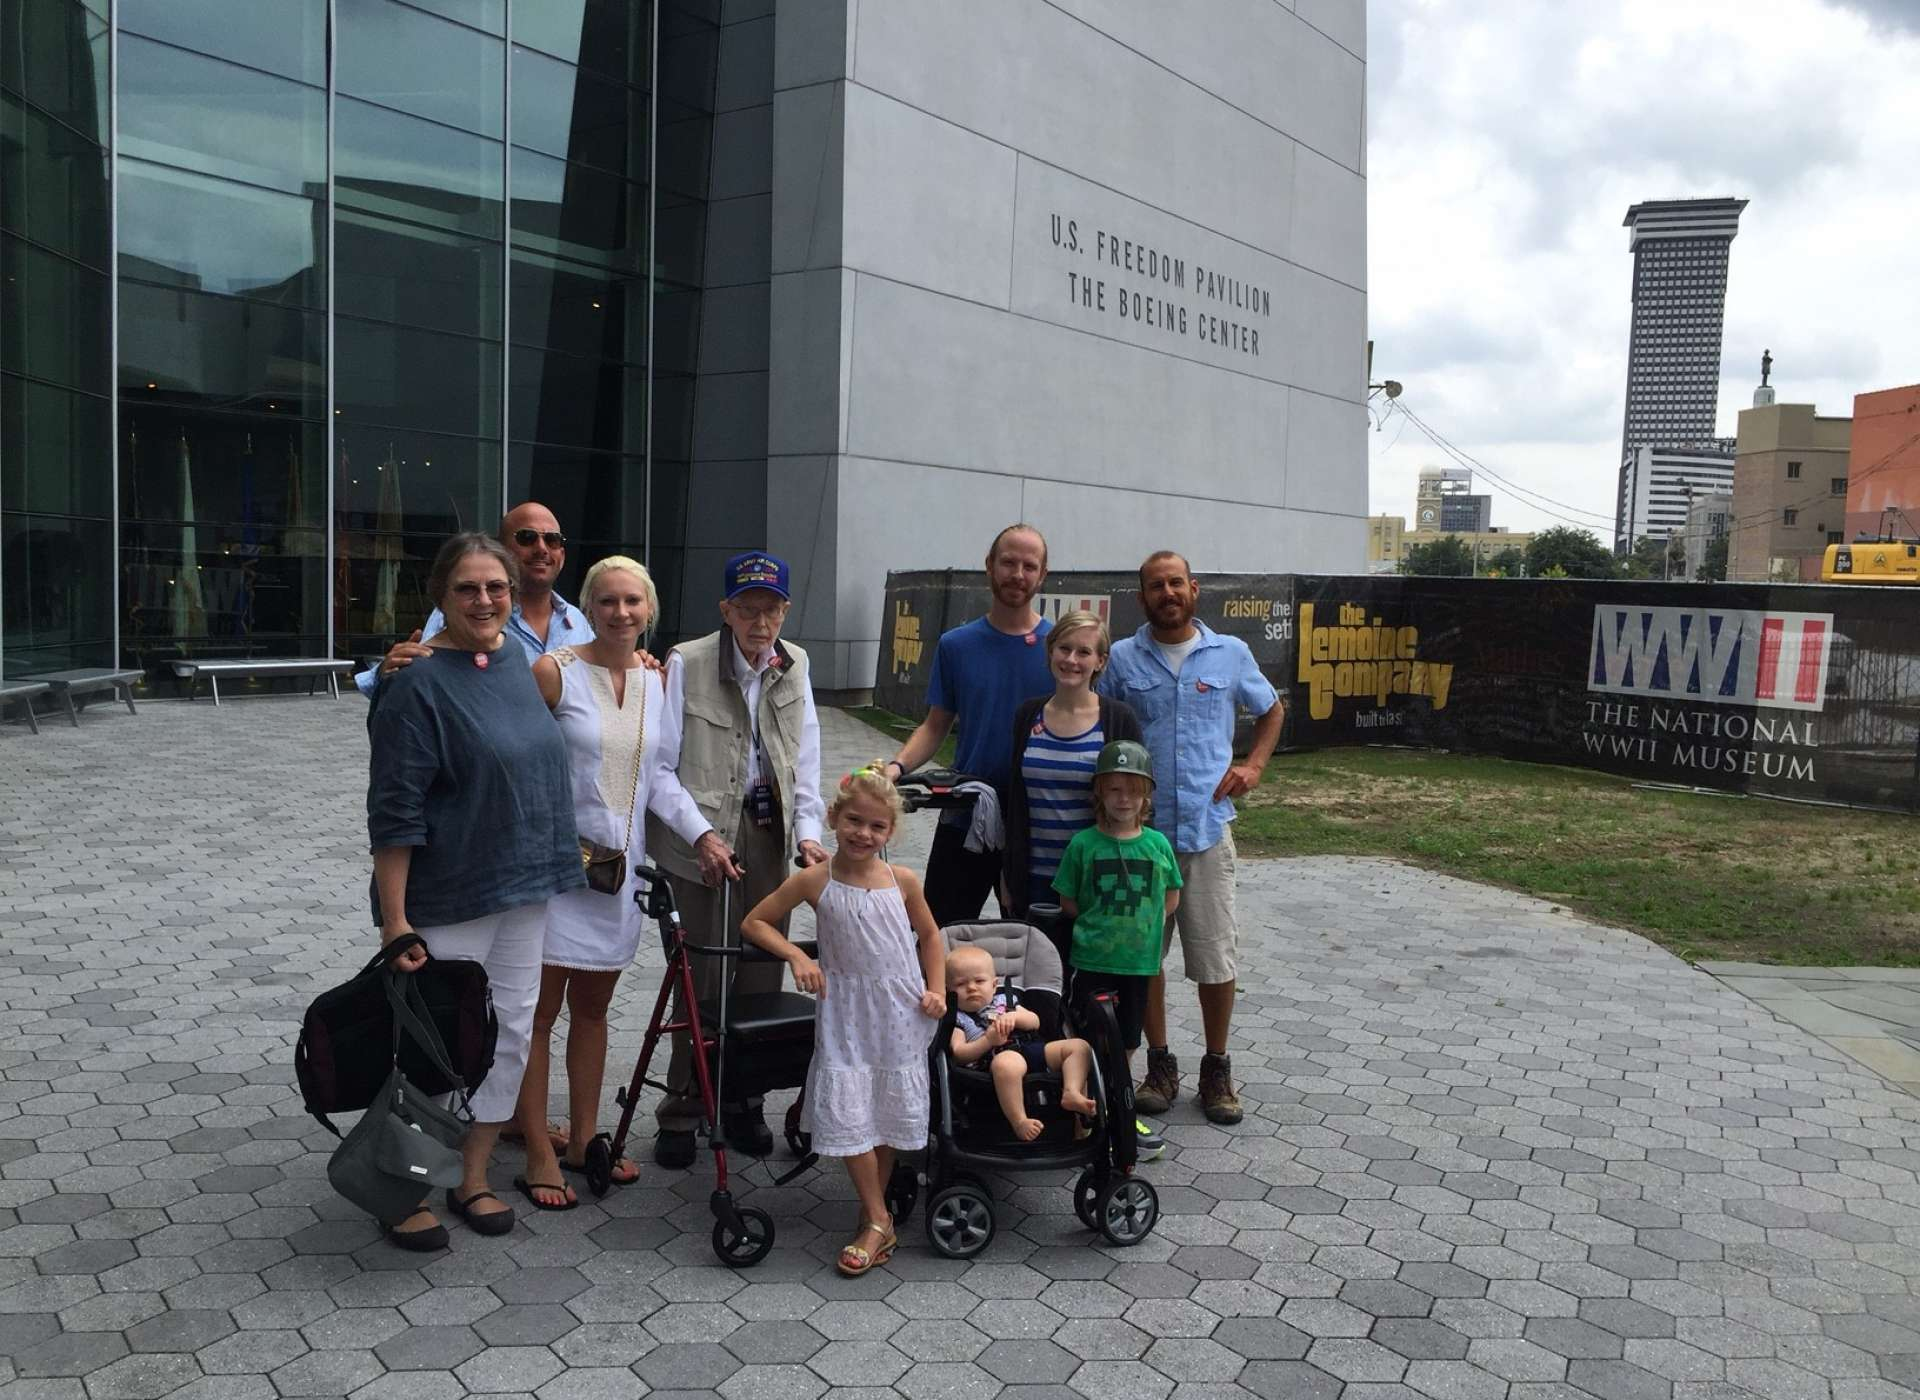 Patriots Circle member family at US Freedom Pavilion